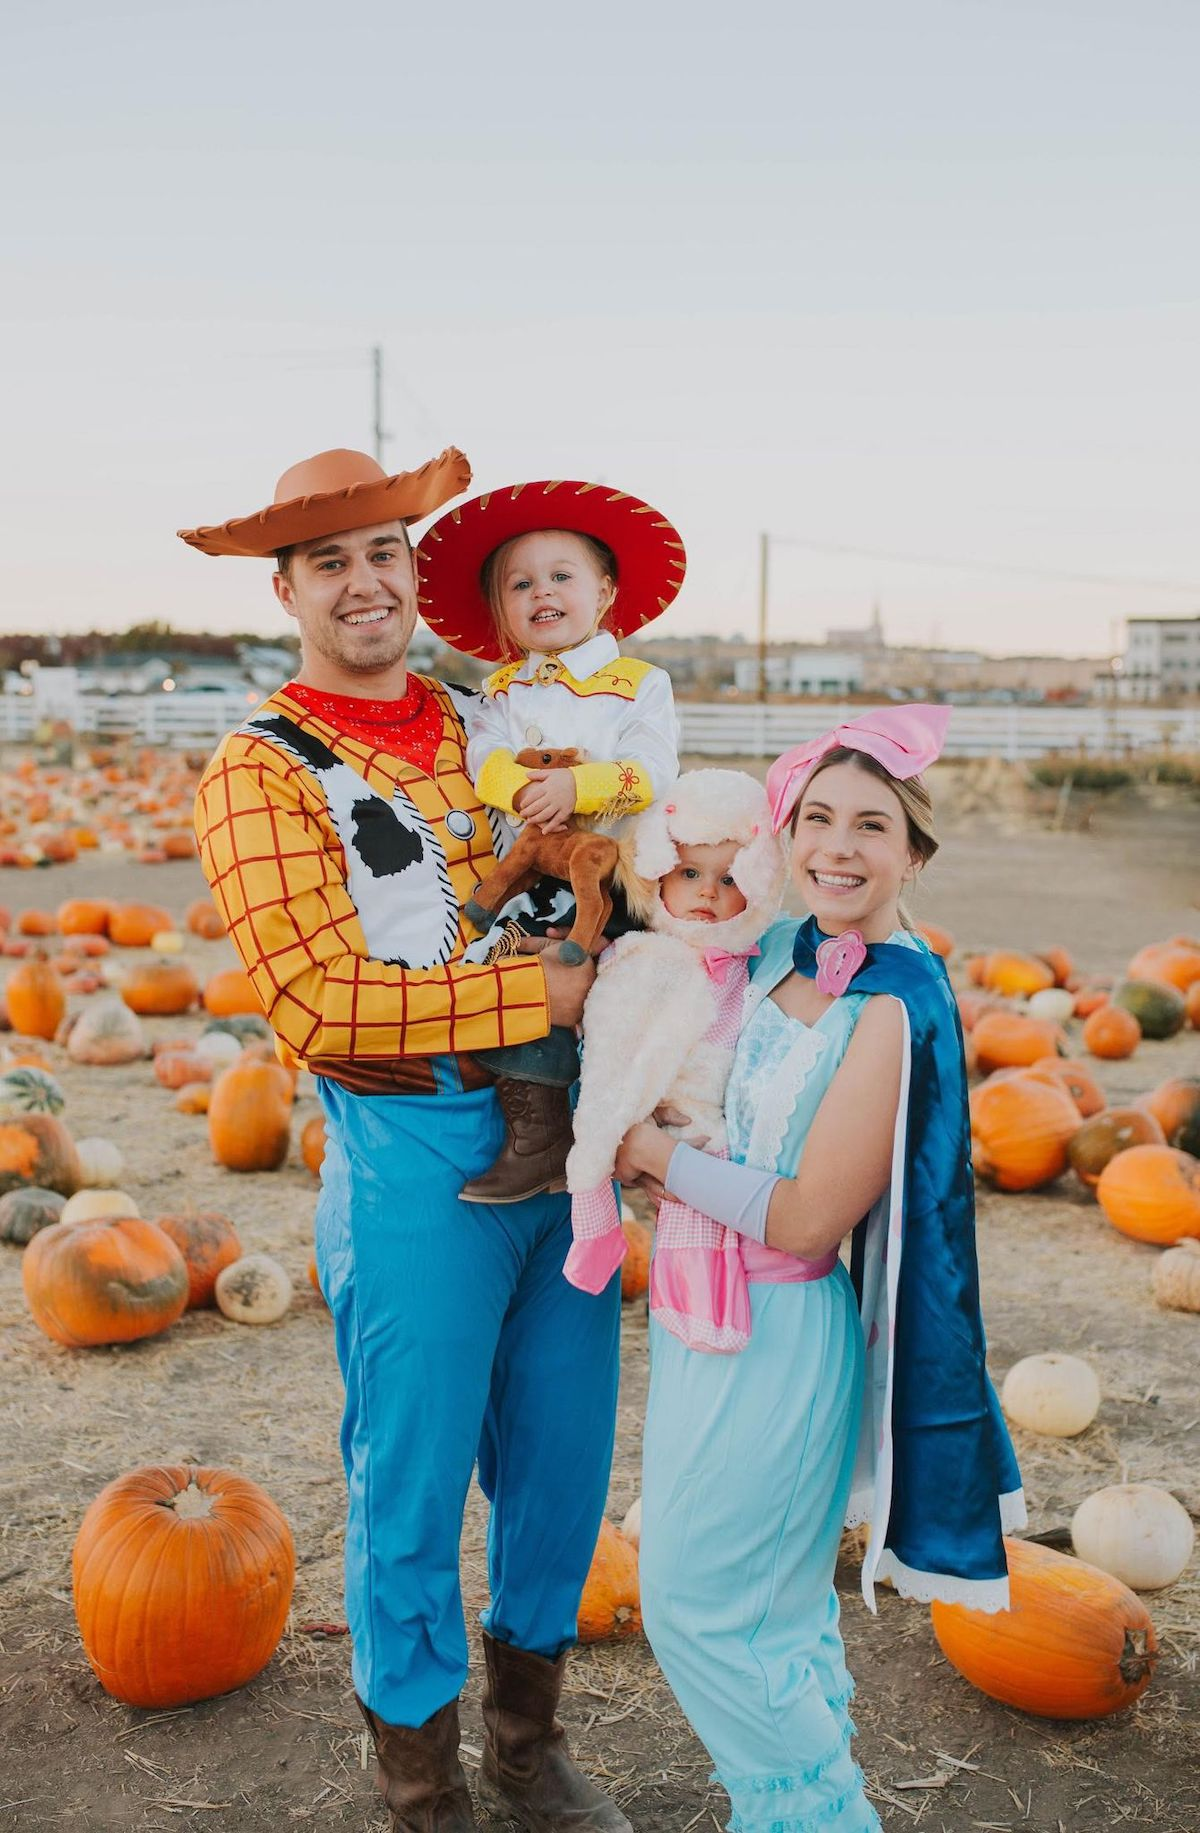 Family wearing Toy Story character costumes smile in pumpkin patch for picture.